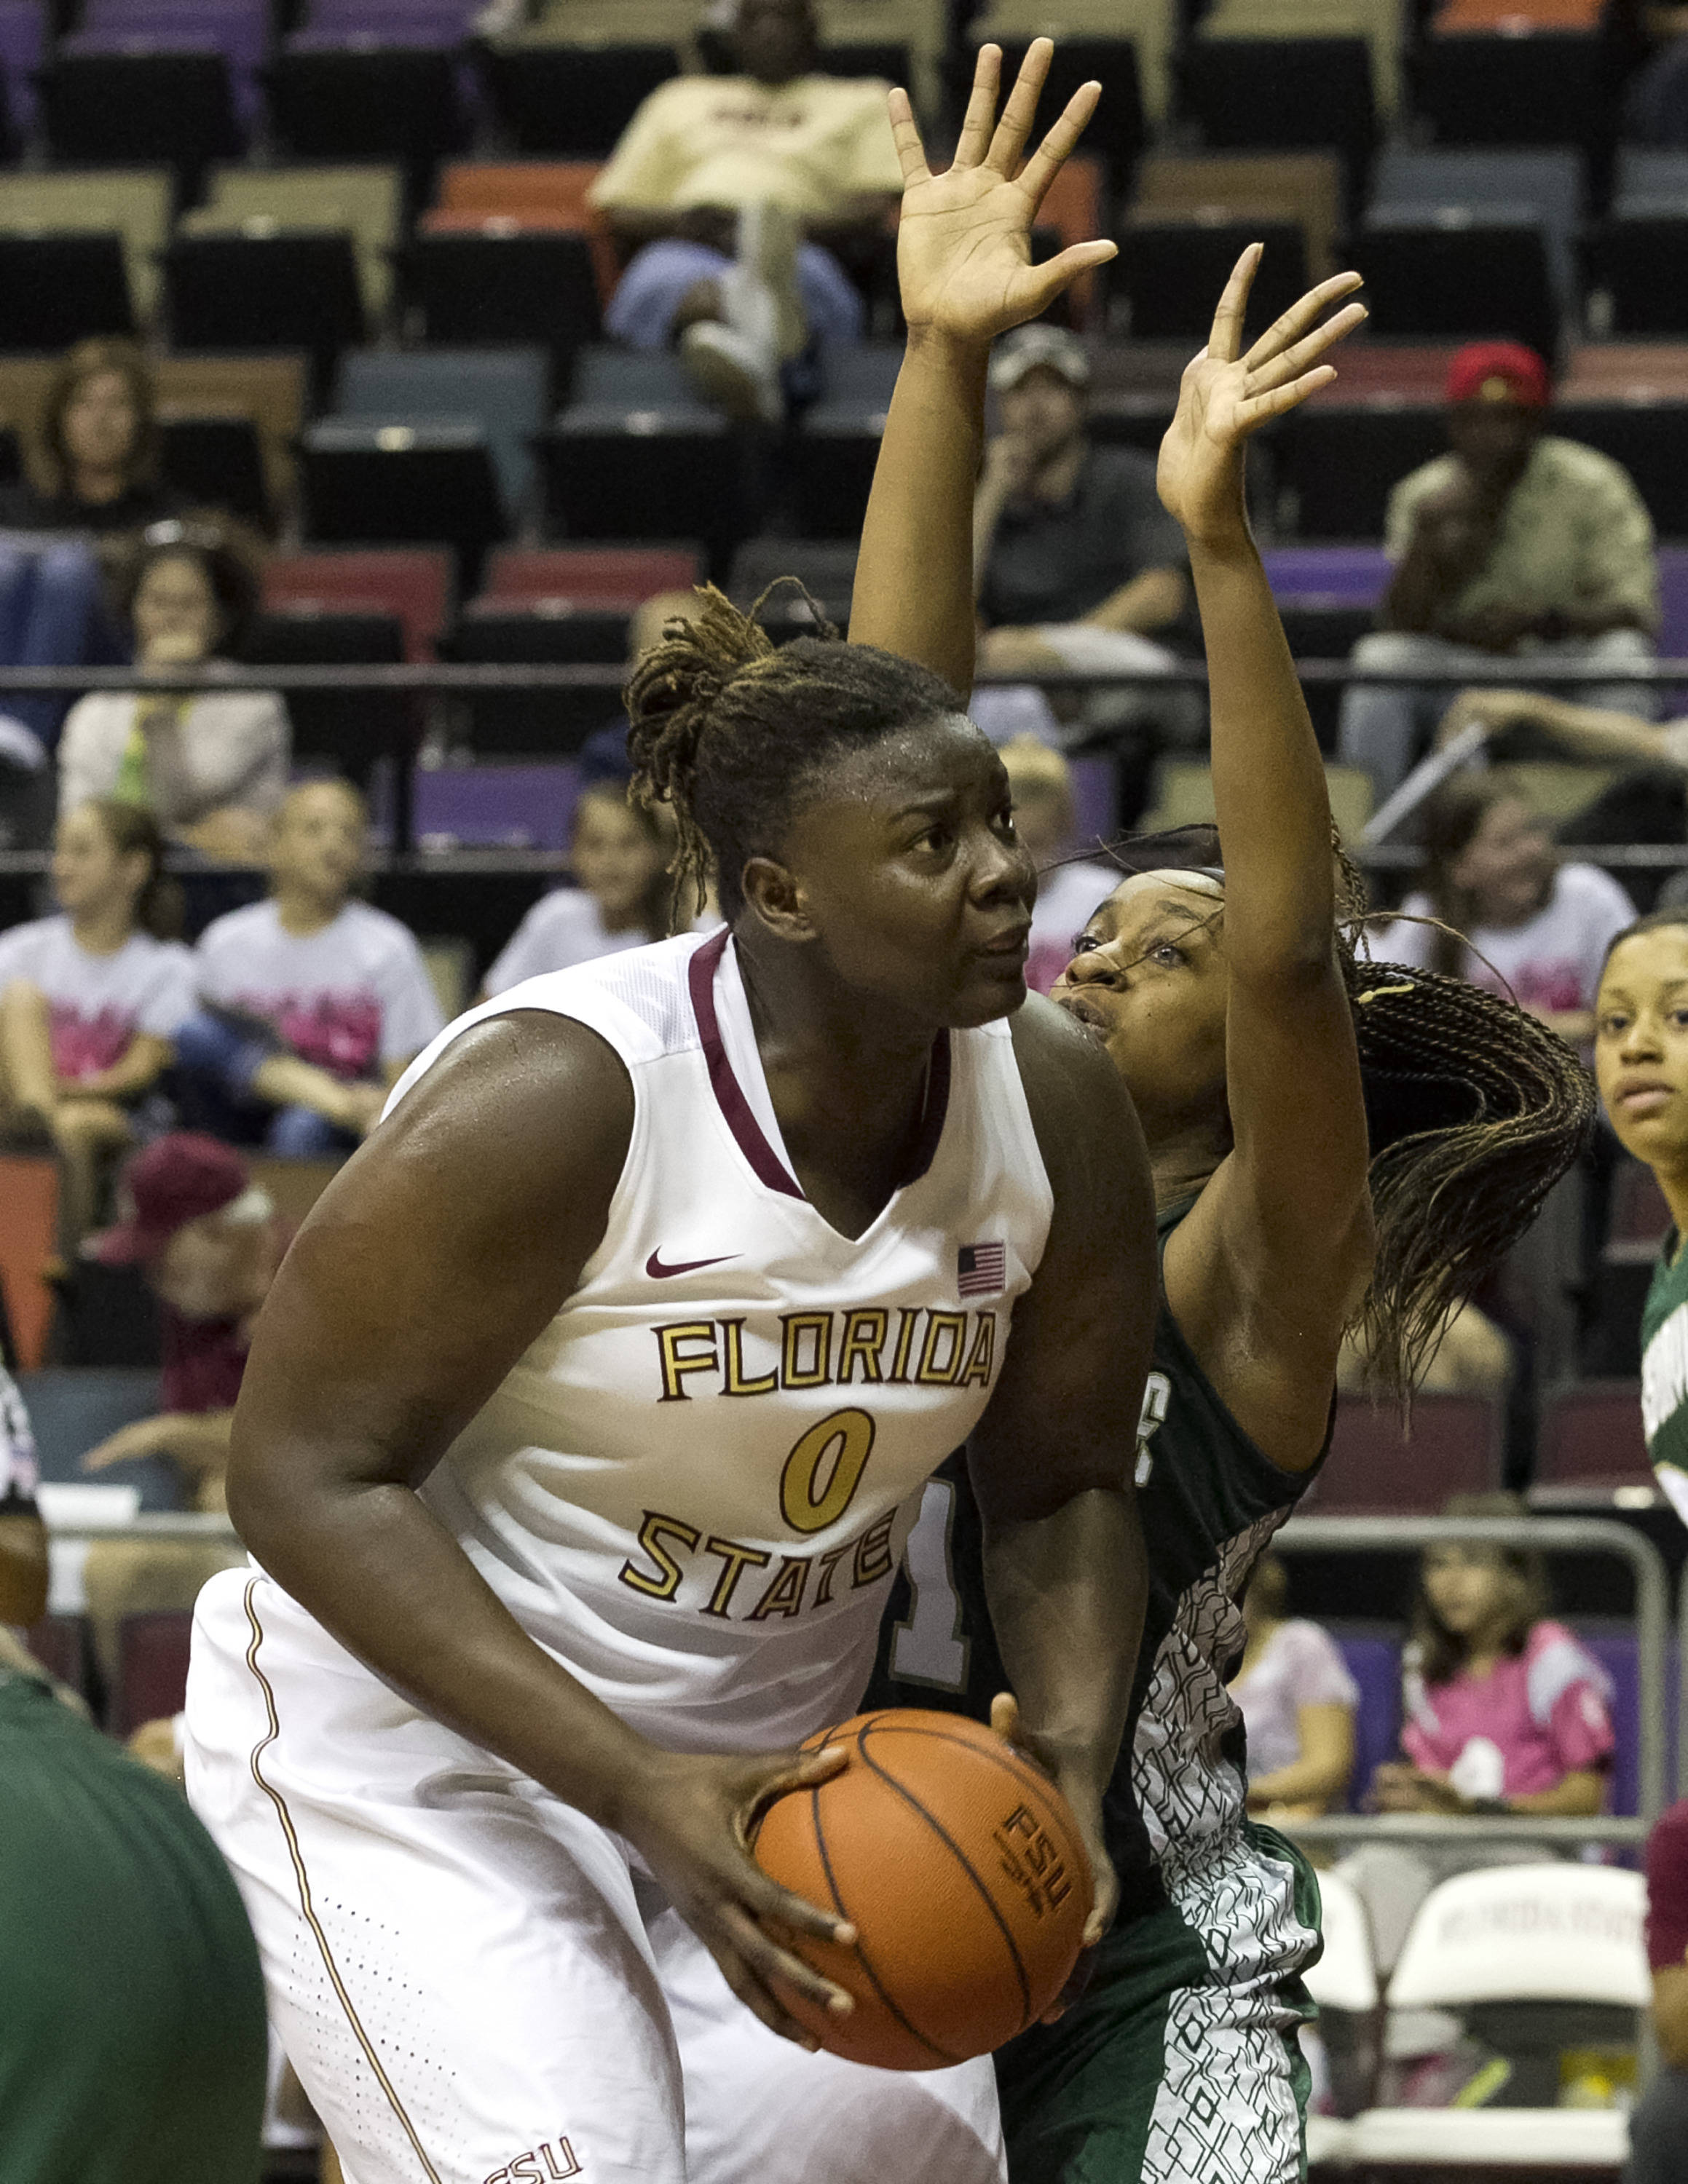 Kai James (0),  getting set to put up a shot, FSU vs Jacksonville, 12-08-13,  (Photo by Steve Musco)